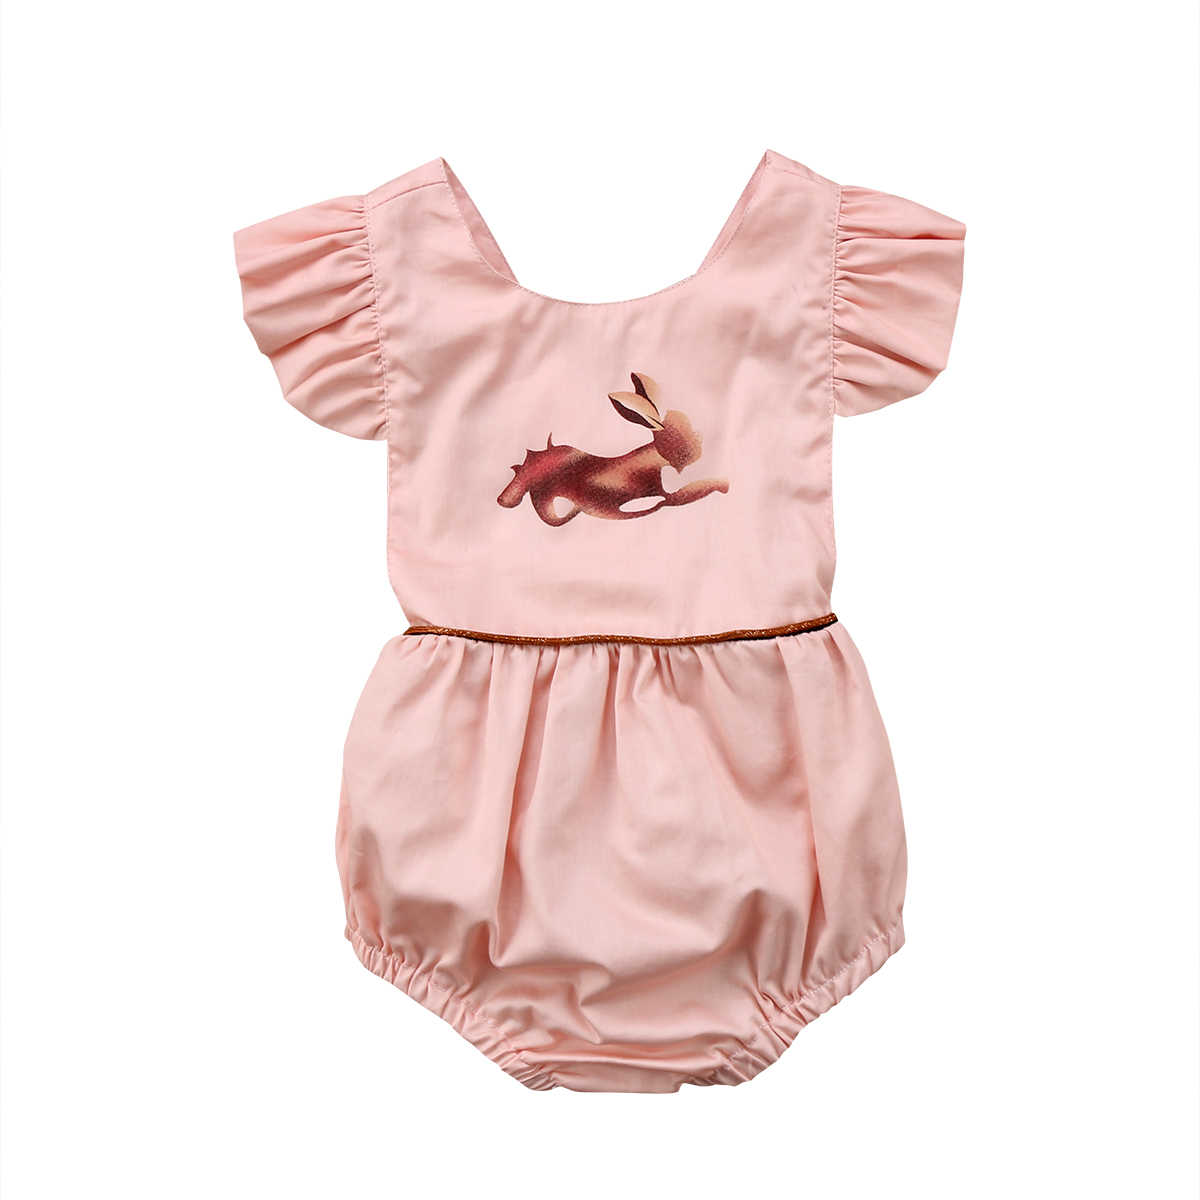 8e8623ae9e1 Infant Baby Girls Bunny Romper 2018 Ruffles Jumpsuit Newborn Baby Girls  Cotton Sunsuit Easter Outfits Children